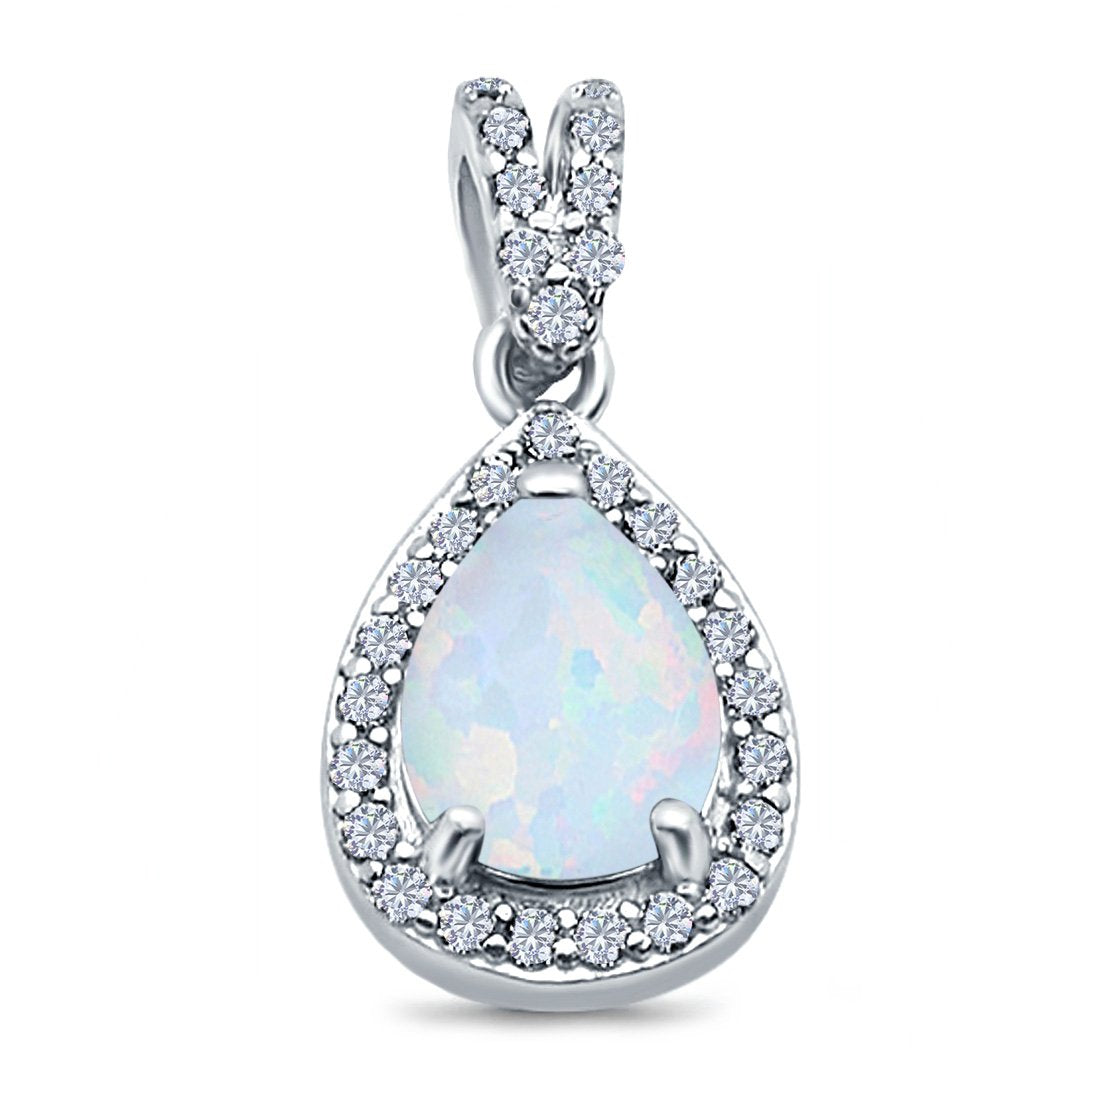 Pear Shape Lab Created White Opal Pendant for Necklace 925 Sterling Silver